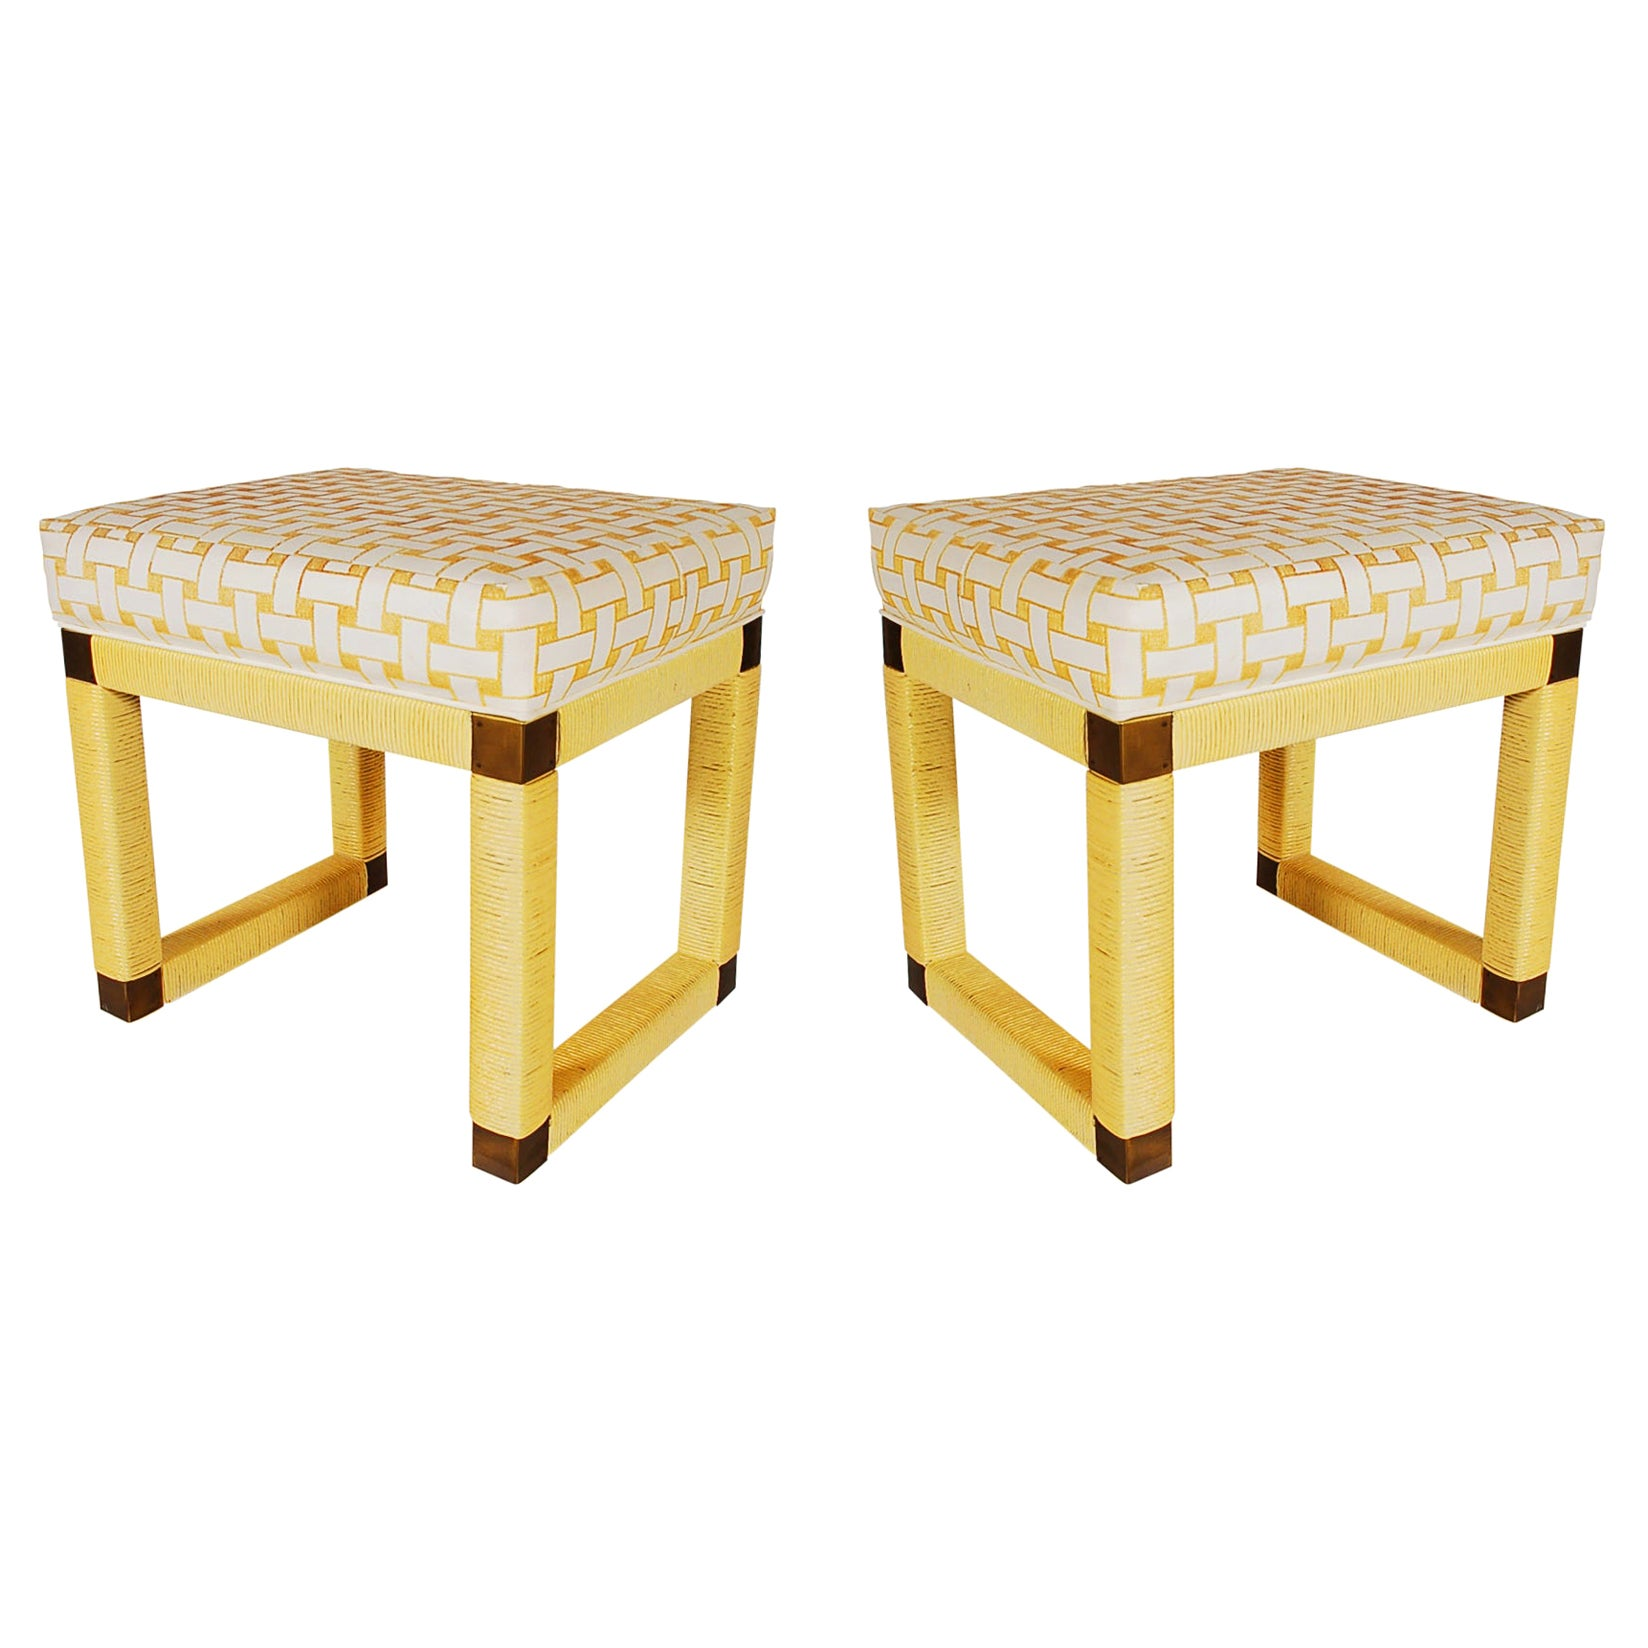 Matching Pair of Midcentury Hollywood Regency Yellow Rattan and Brass Bench Set